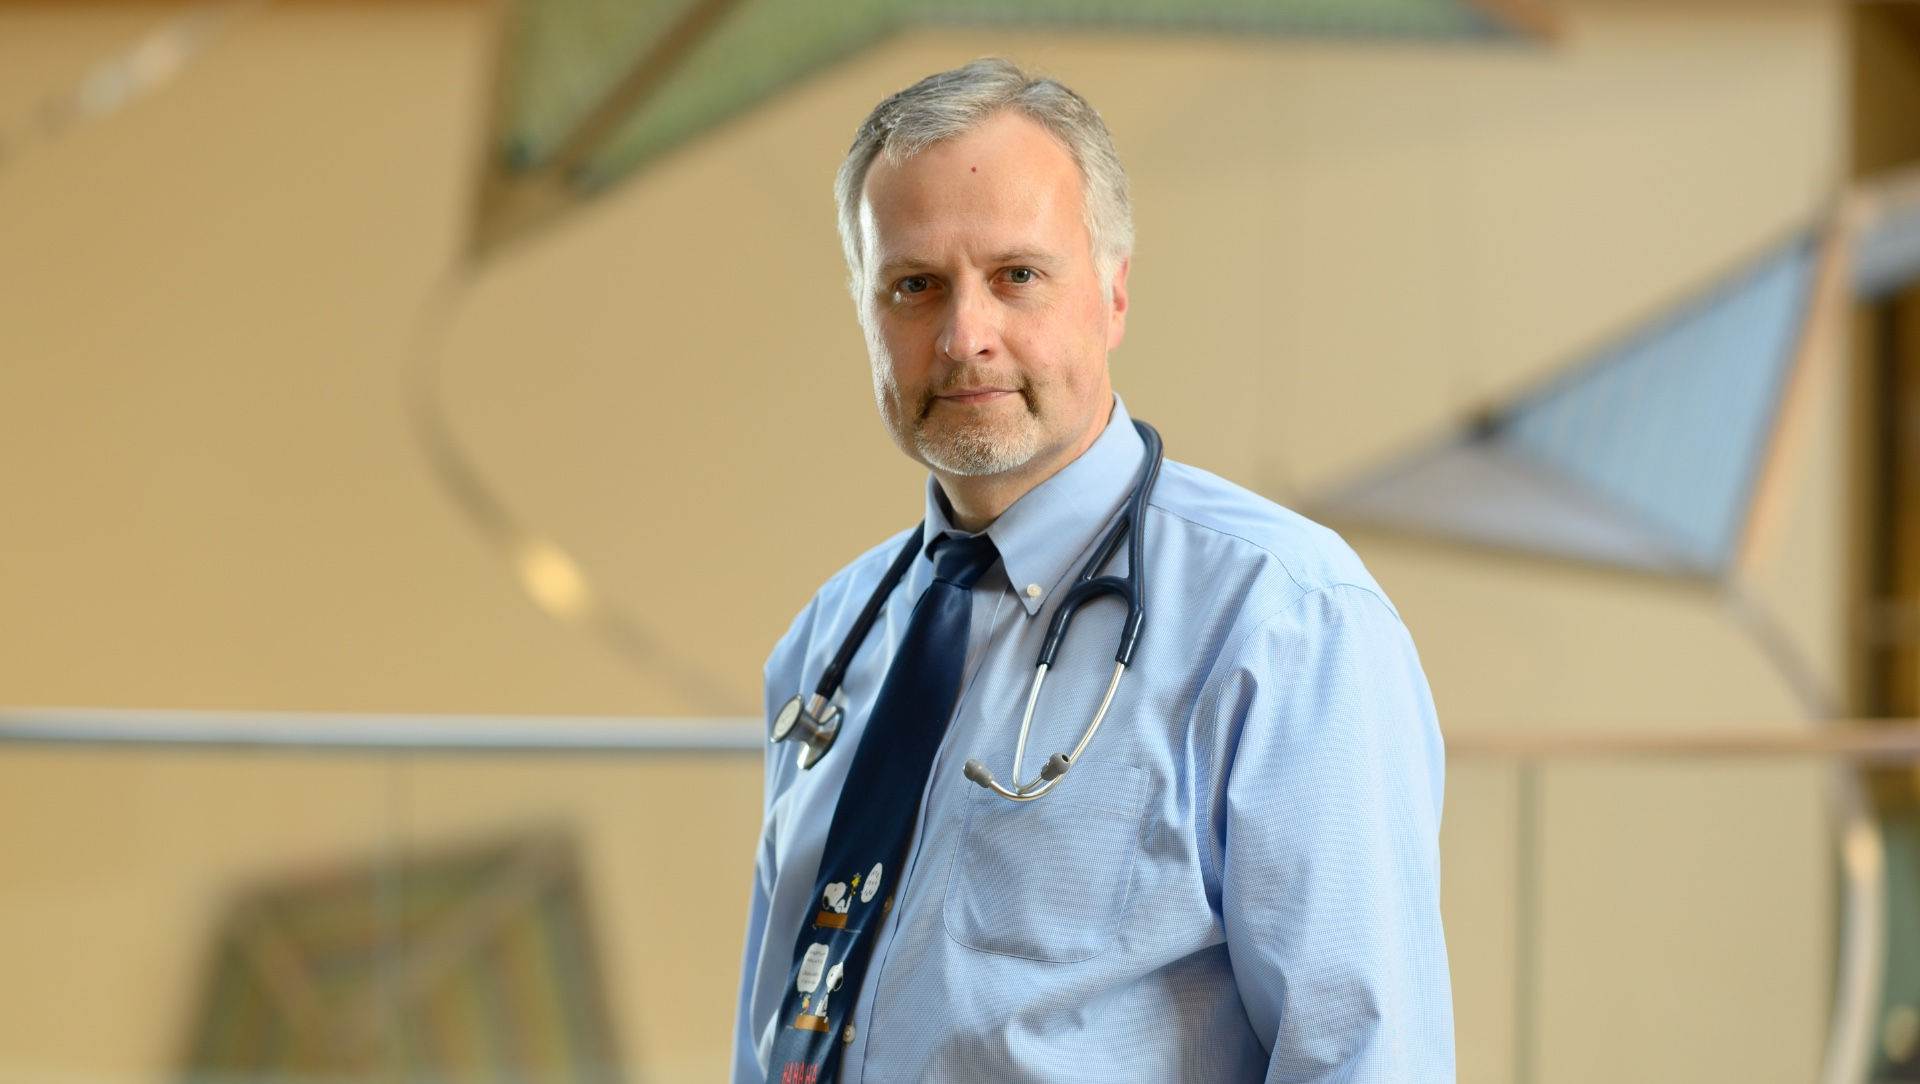 Dr. Stefan Kiessling, a middle-aged white man with grey hair, stands in the lobby of Kentucky Children's Hospital wearing a light blue shirt, with a navy-blue tie and a stethoscope placed around his neck.